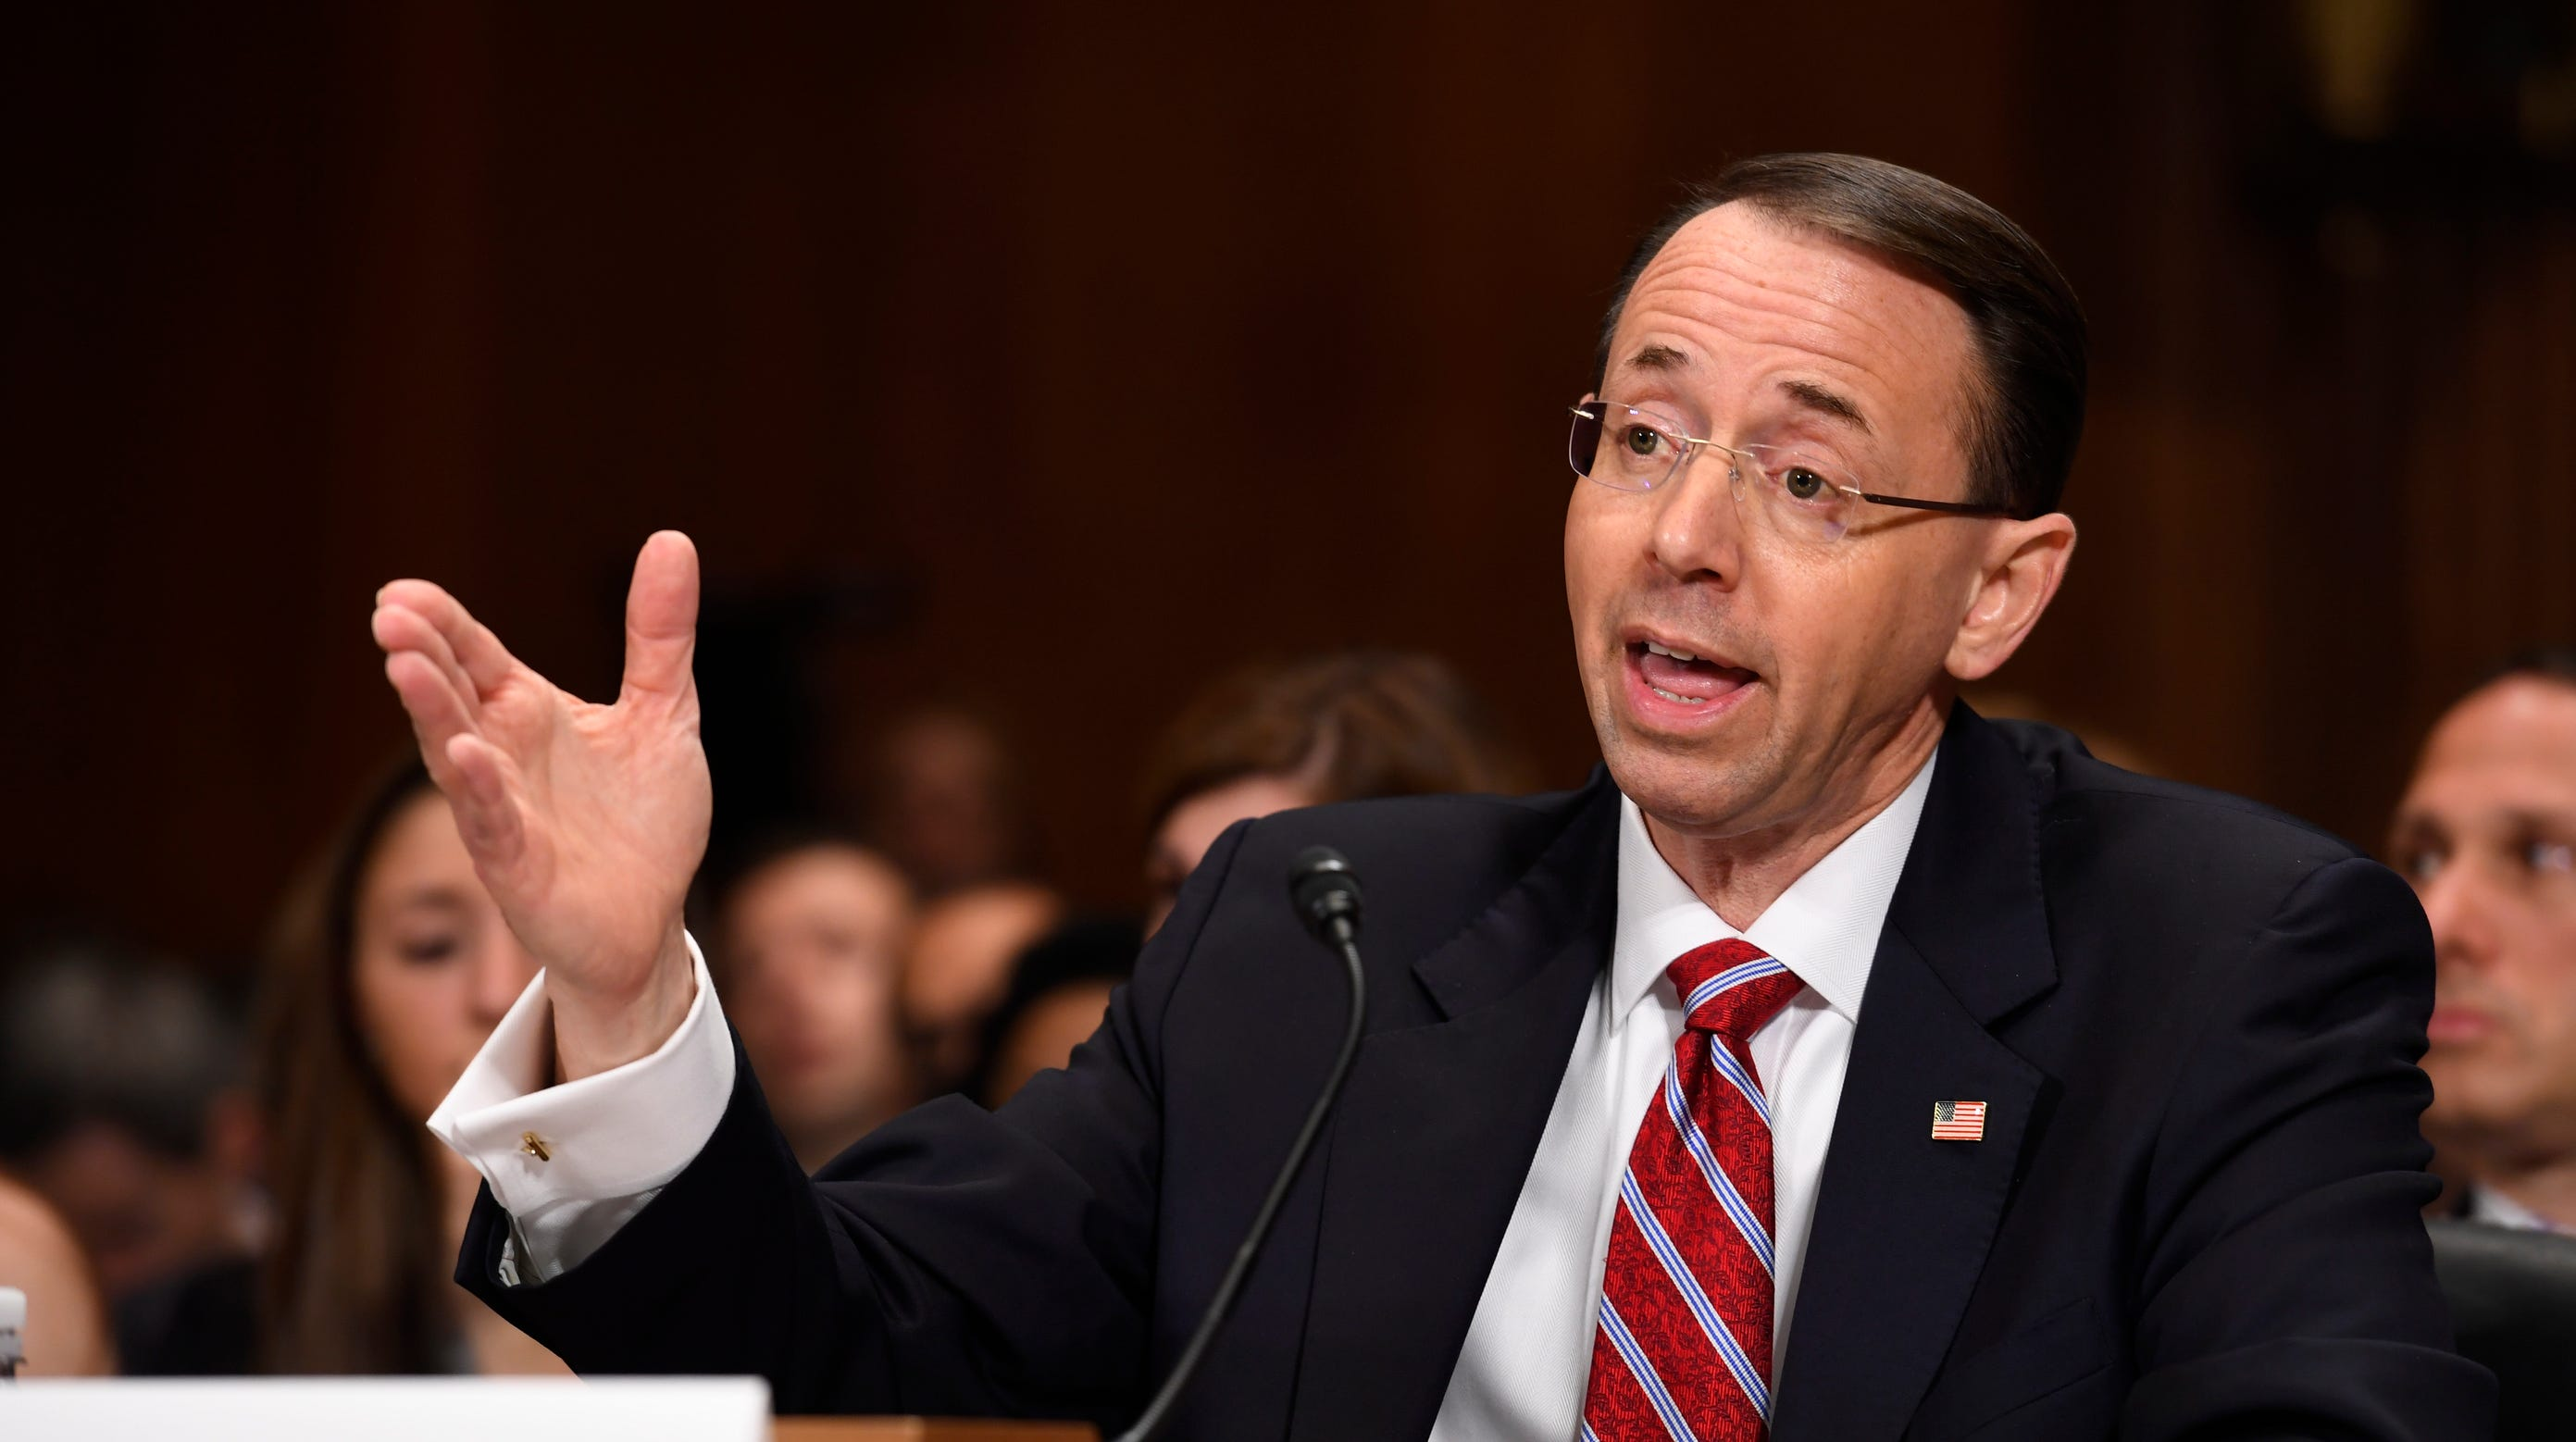 Rod Rosenstein testifies during the Senate Judiciary Committee confirmation hearing of Rod Rosenstein for Deputy Attorney General and Rachel L. Brand for Associate Attorney General. Attorney General Jeff Sessions picked him to supervise the Russia medaling investigation after recusing himself, thereby infuriating President Trump.